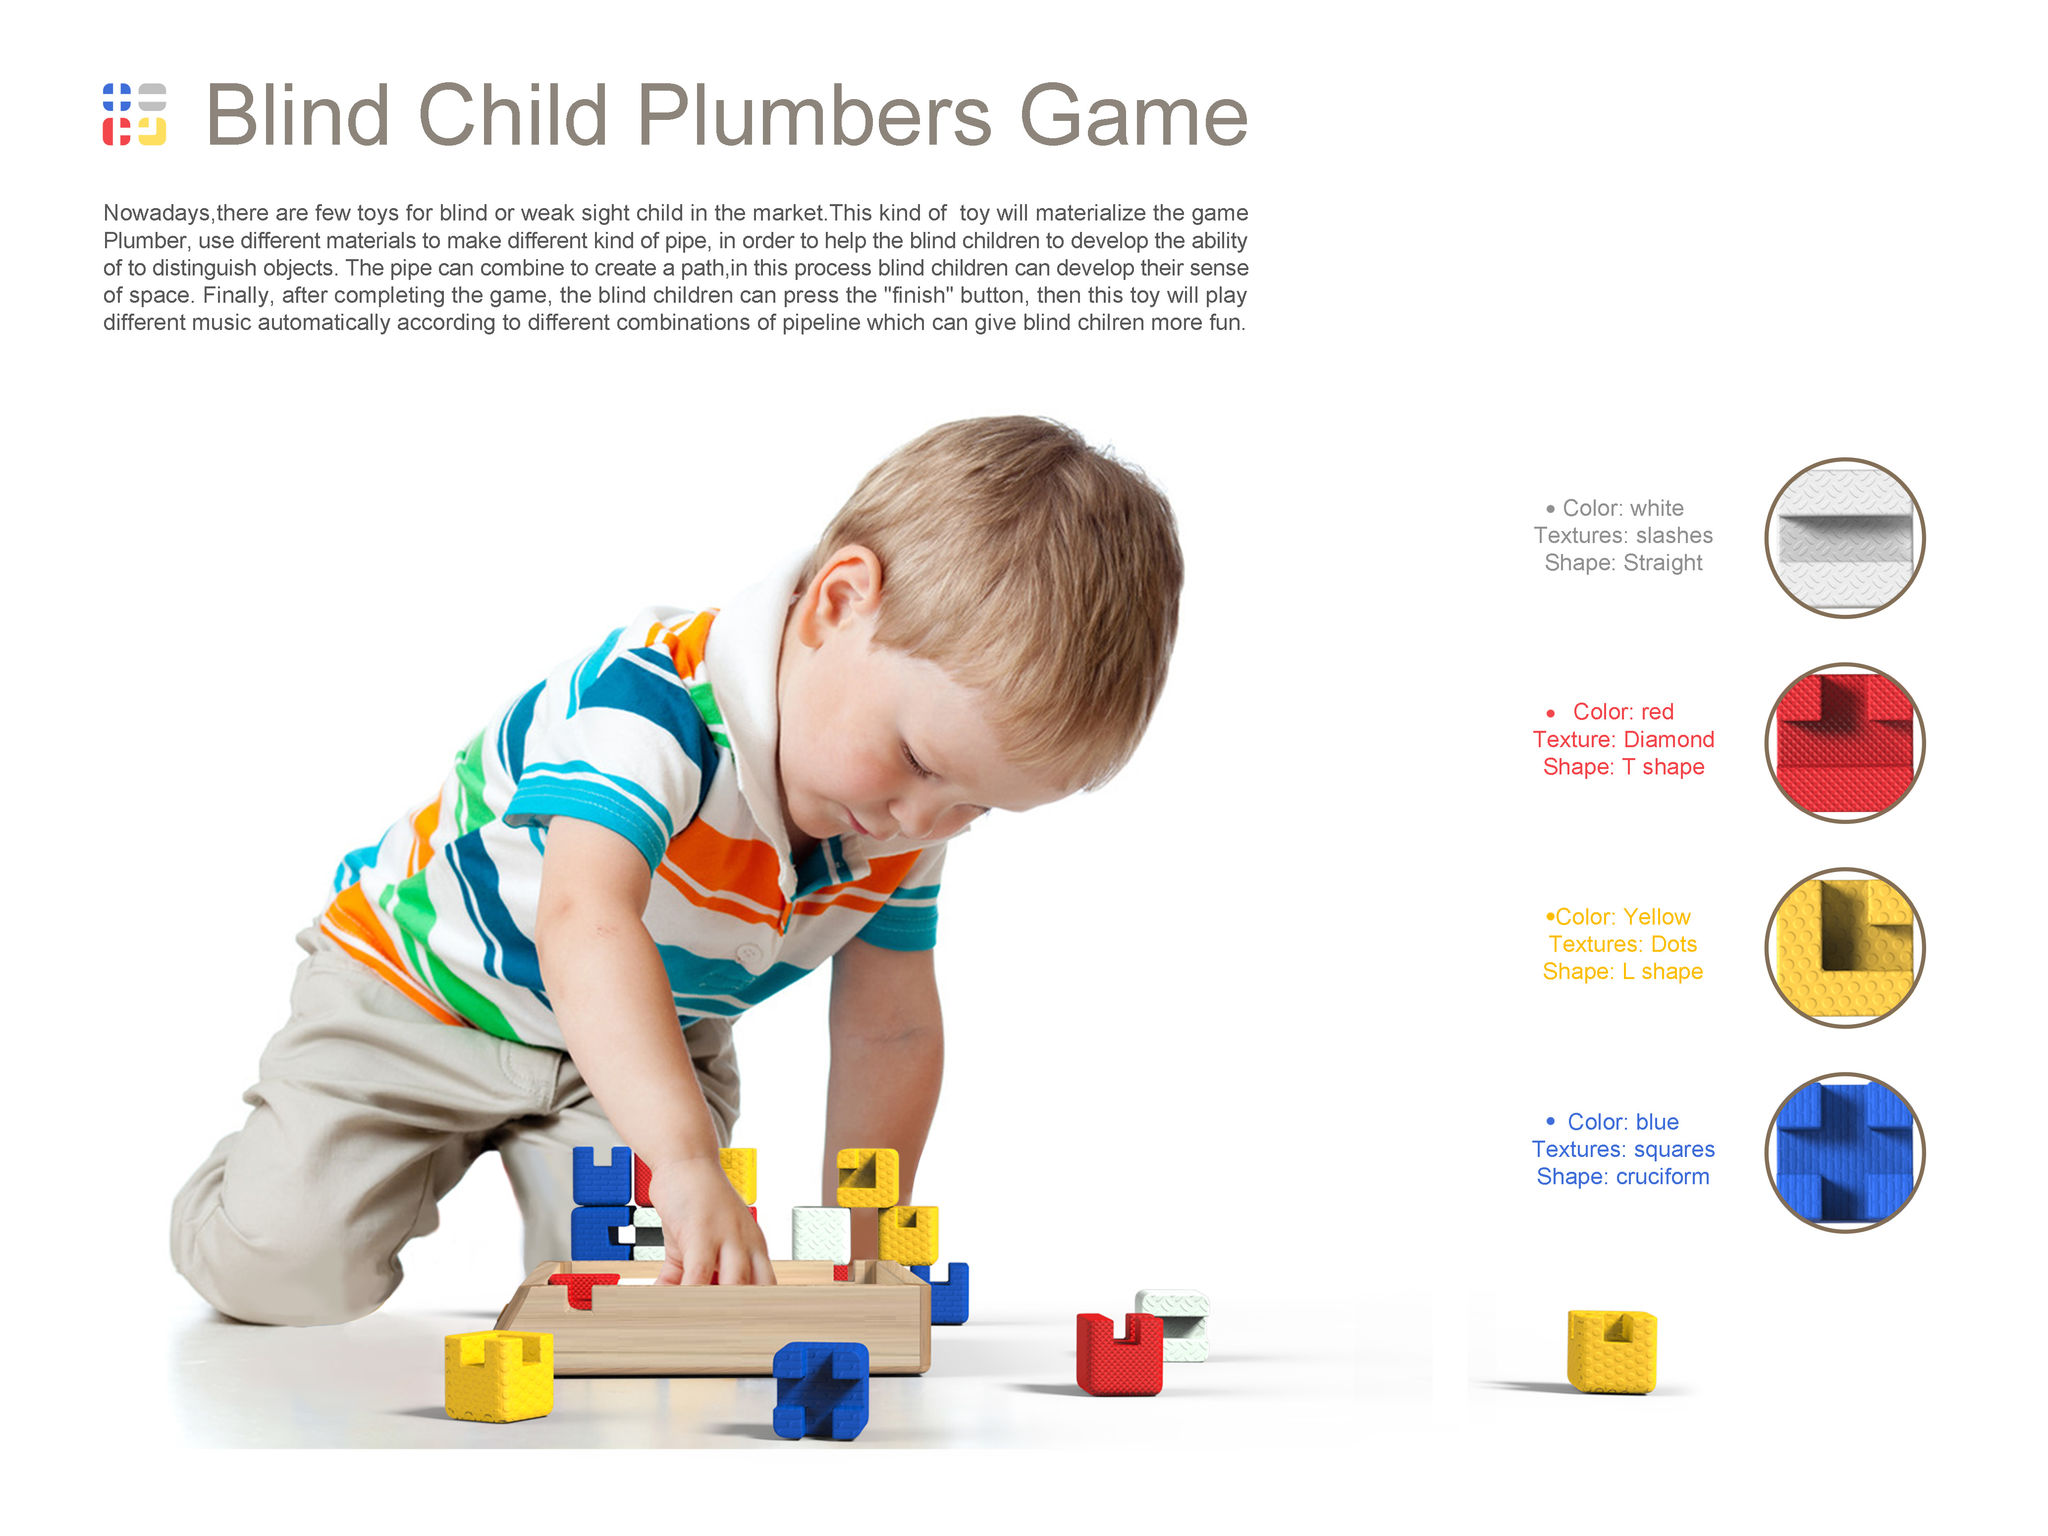 Blind Child Plumbers Game Entry iF WORLD DESIGN GUIDE